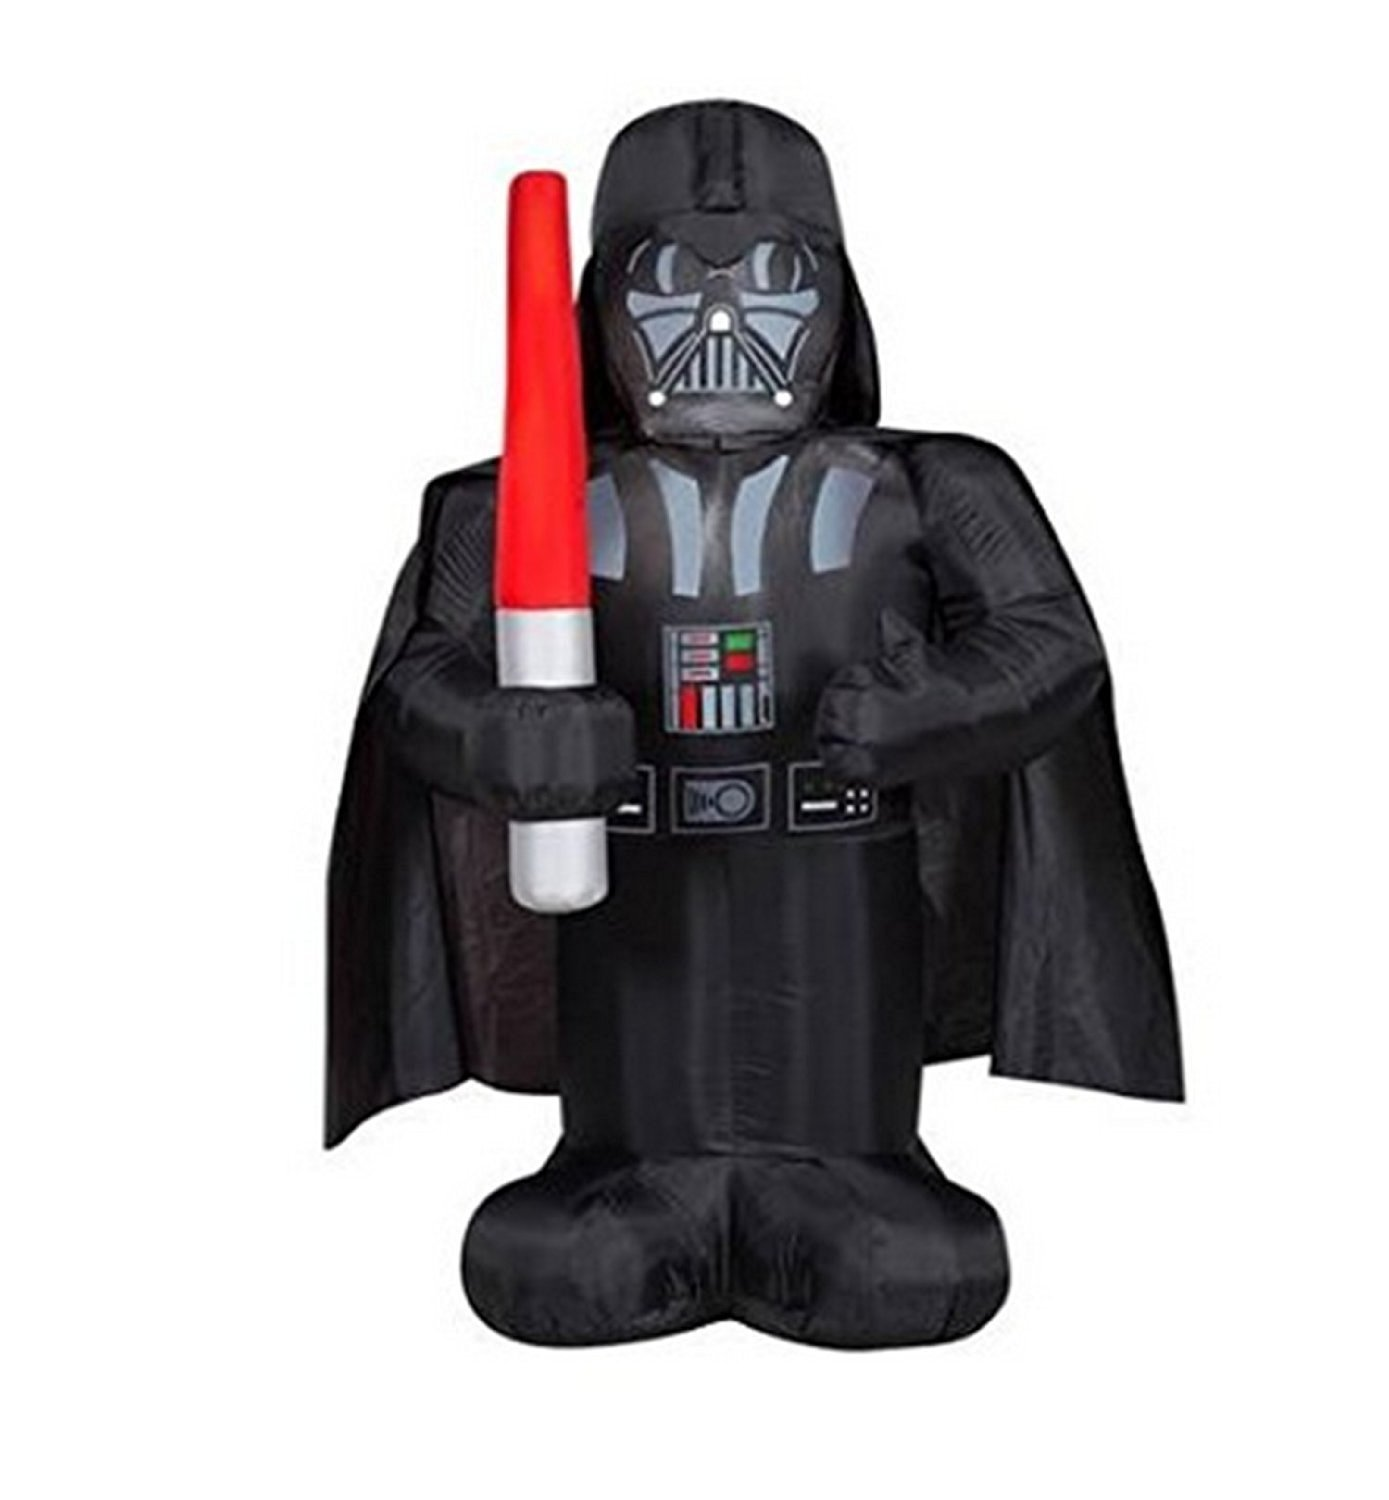 Star Wars Darth Vader Airblown inflatable 10 feet (3.05m) tall 1 pack